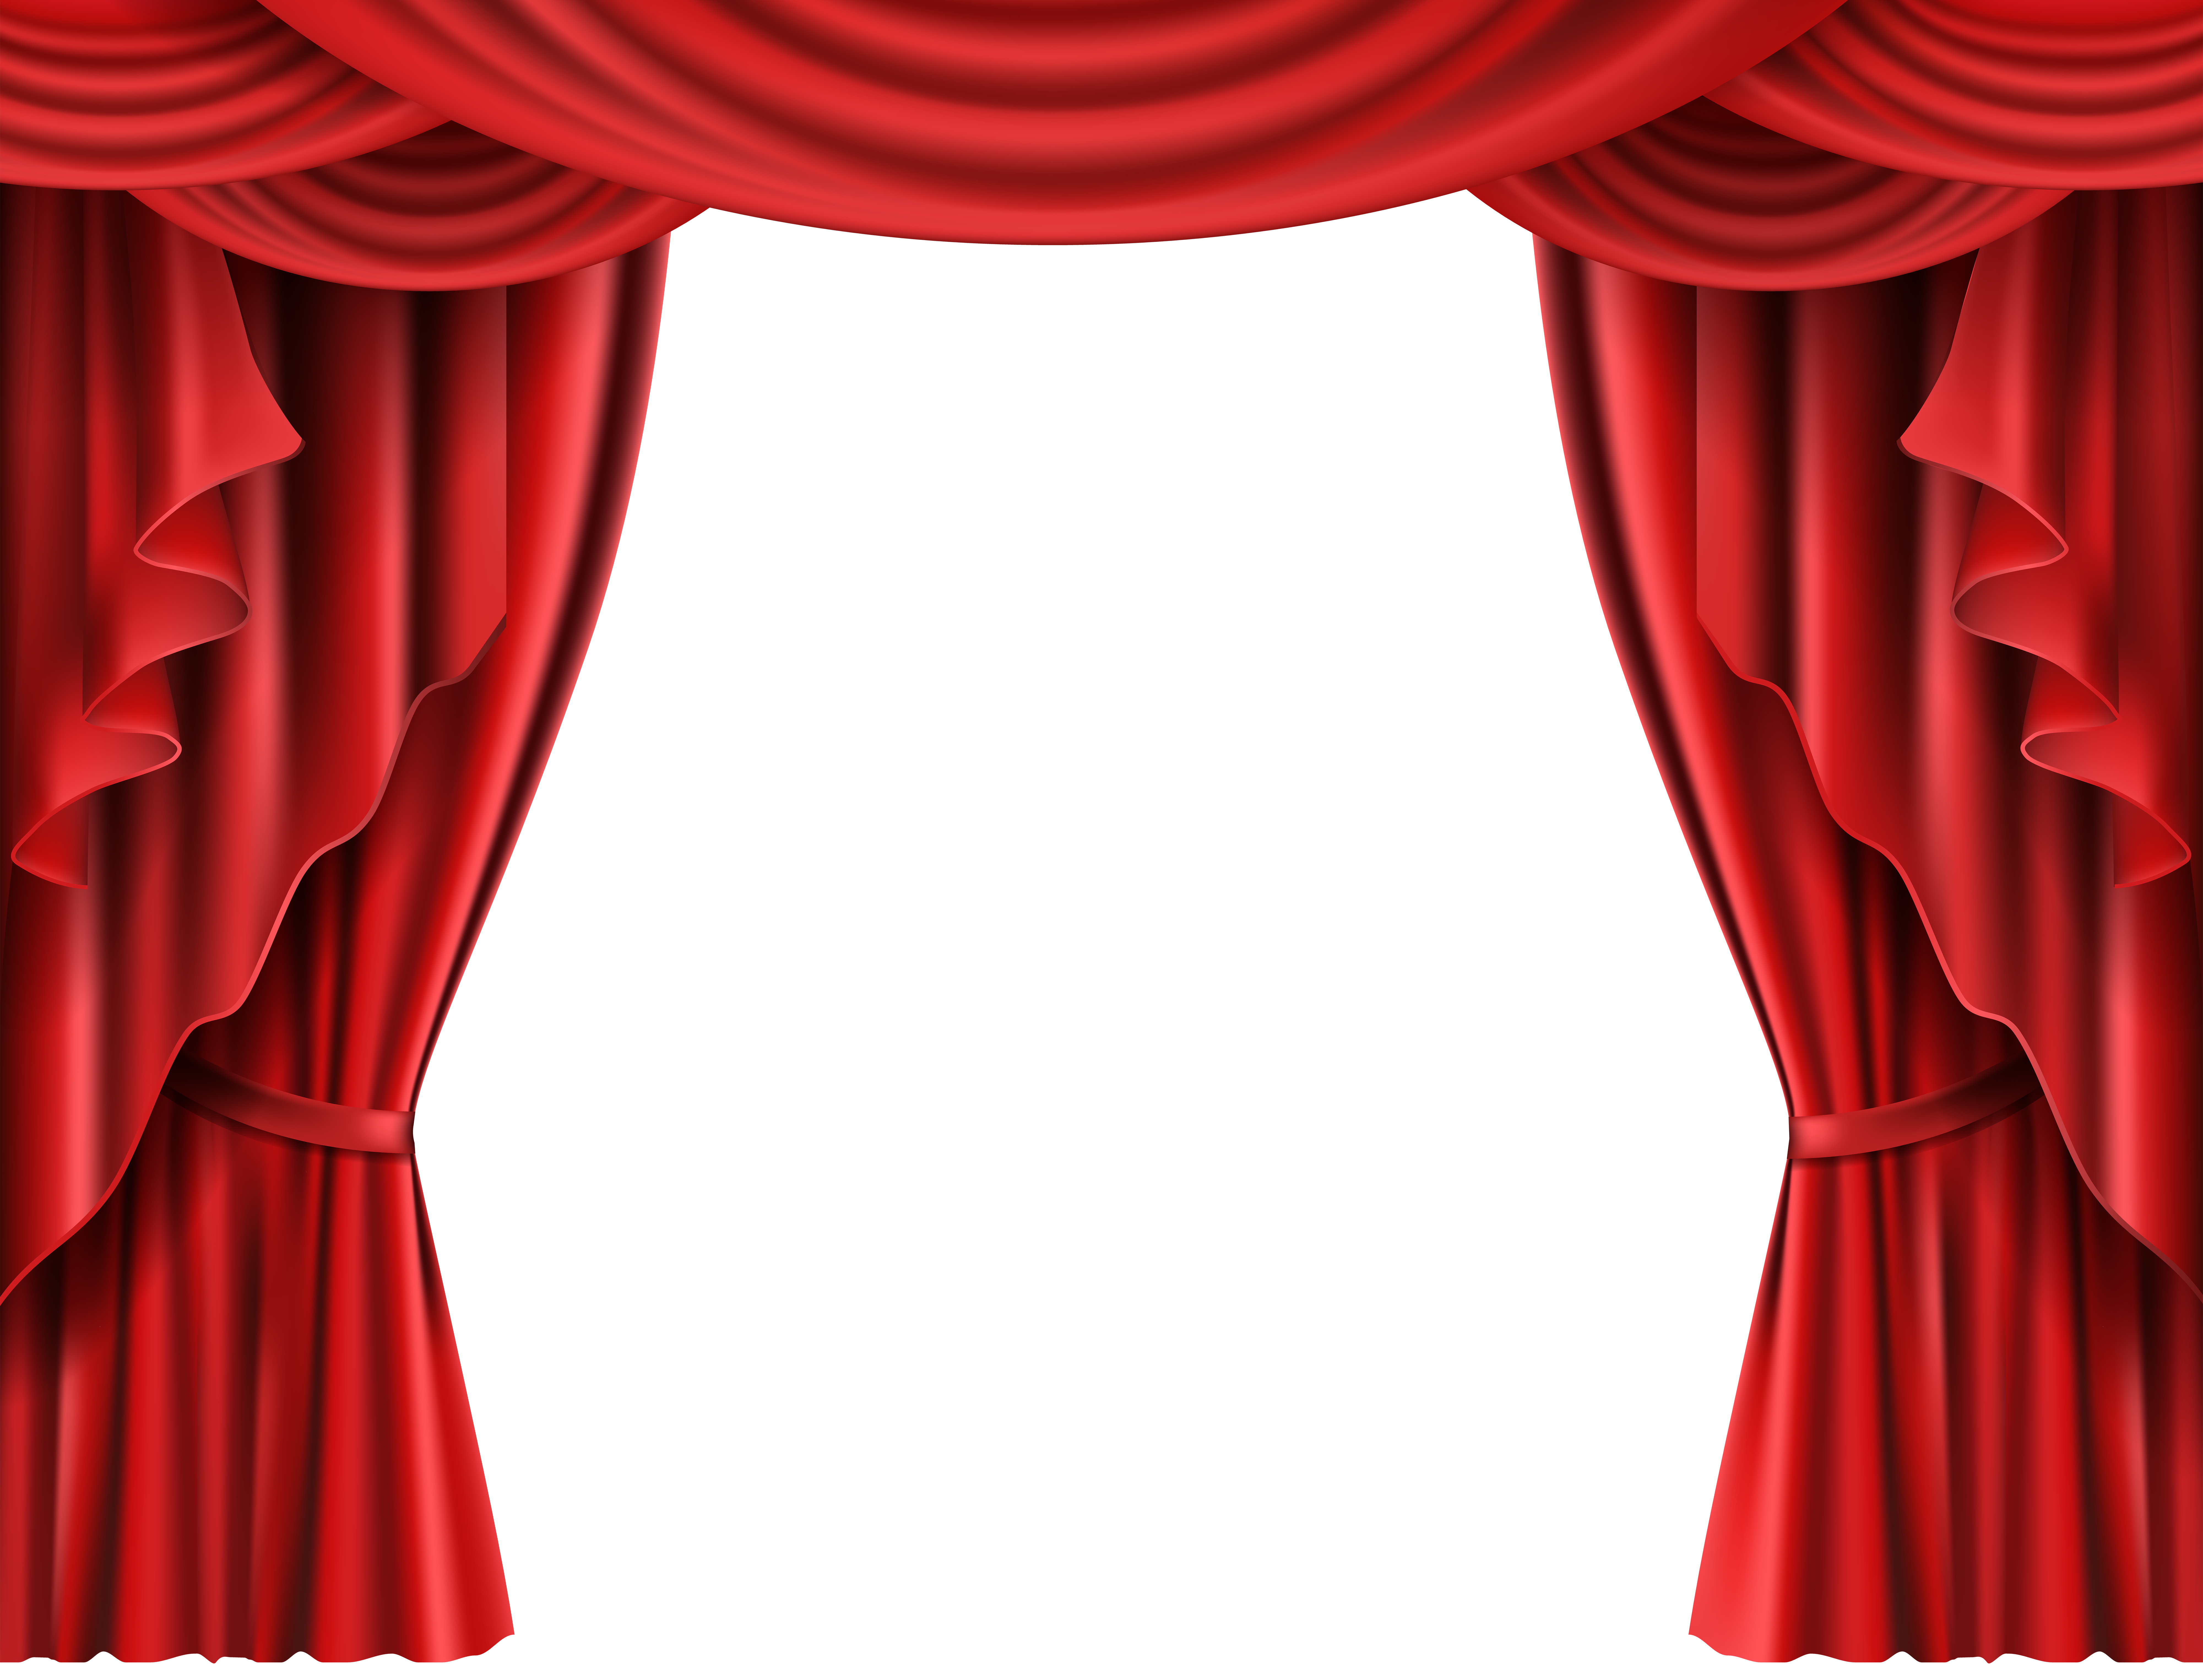 Red theater curtain clipart png freeuse stock Red Theater Curtain Transparent PNG Clip Art Image ... png freeuse stock